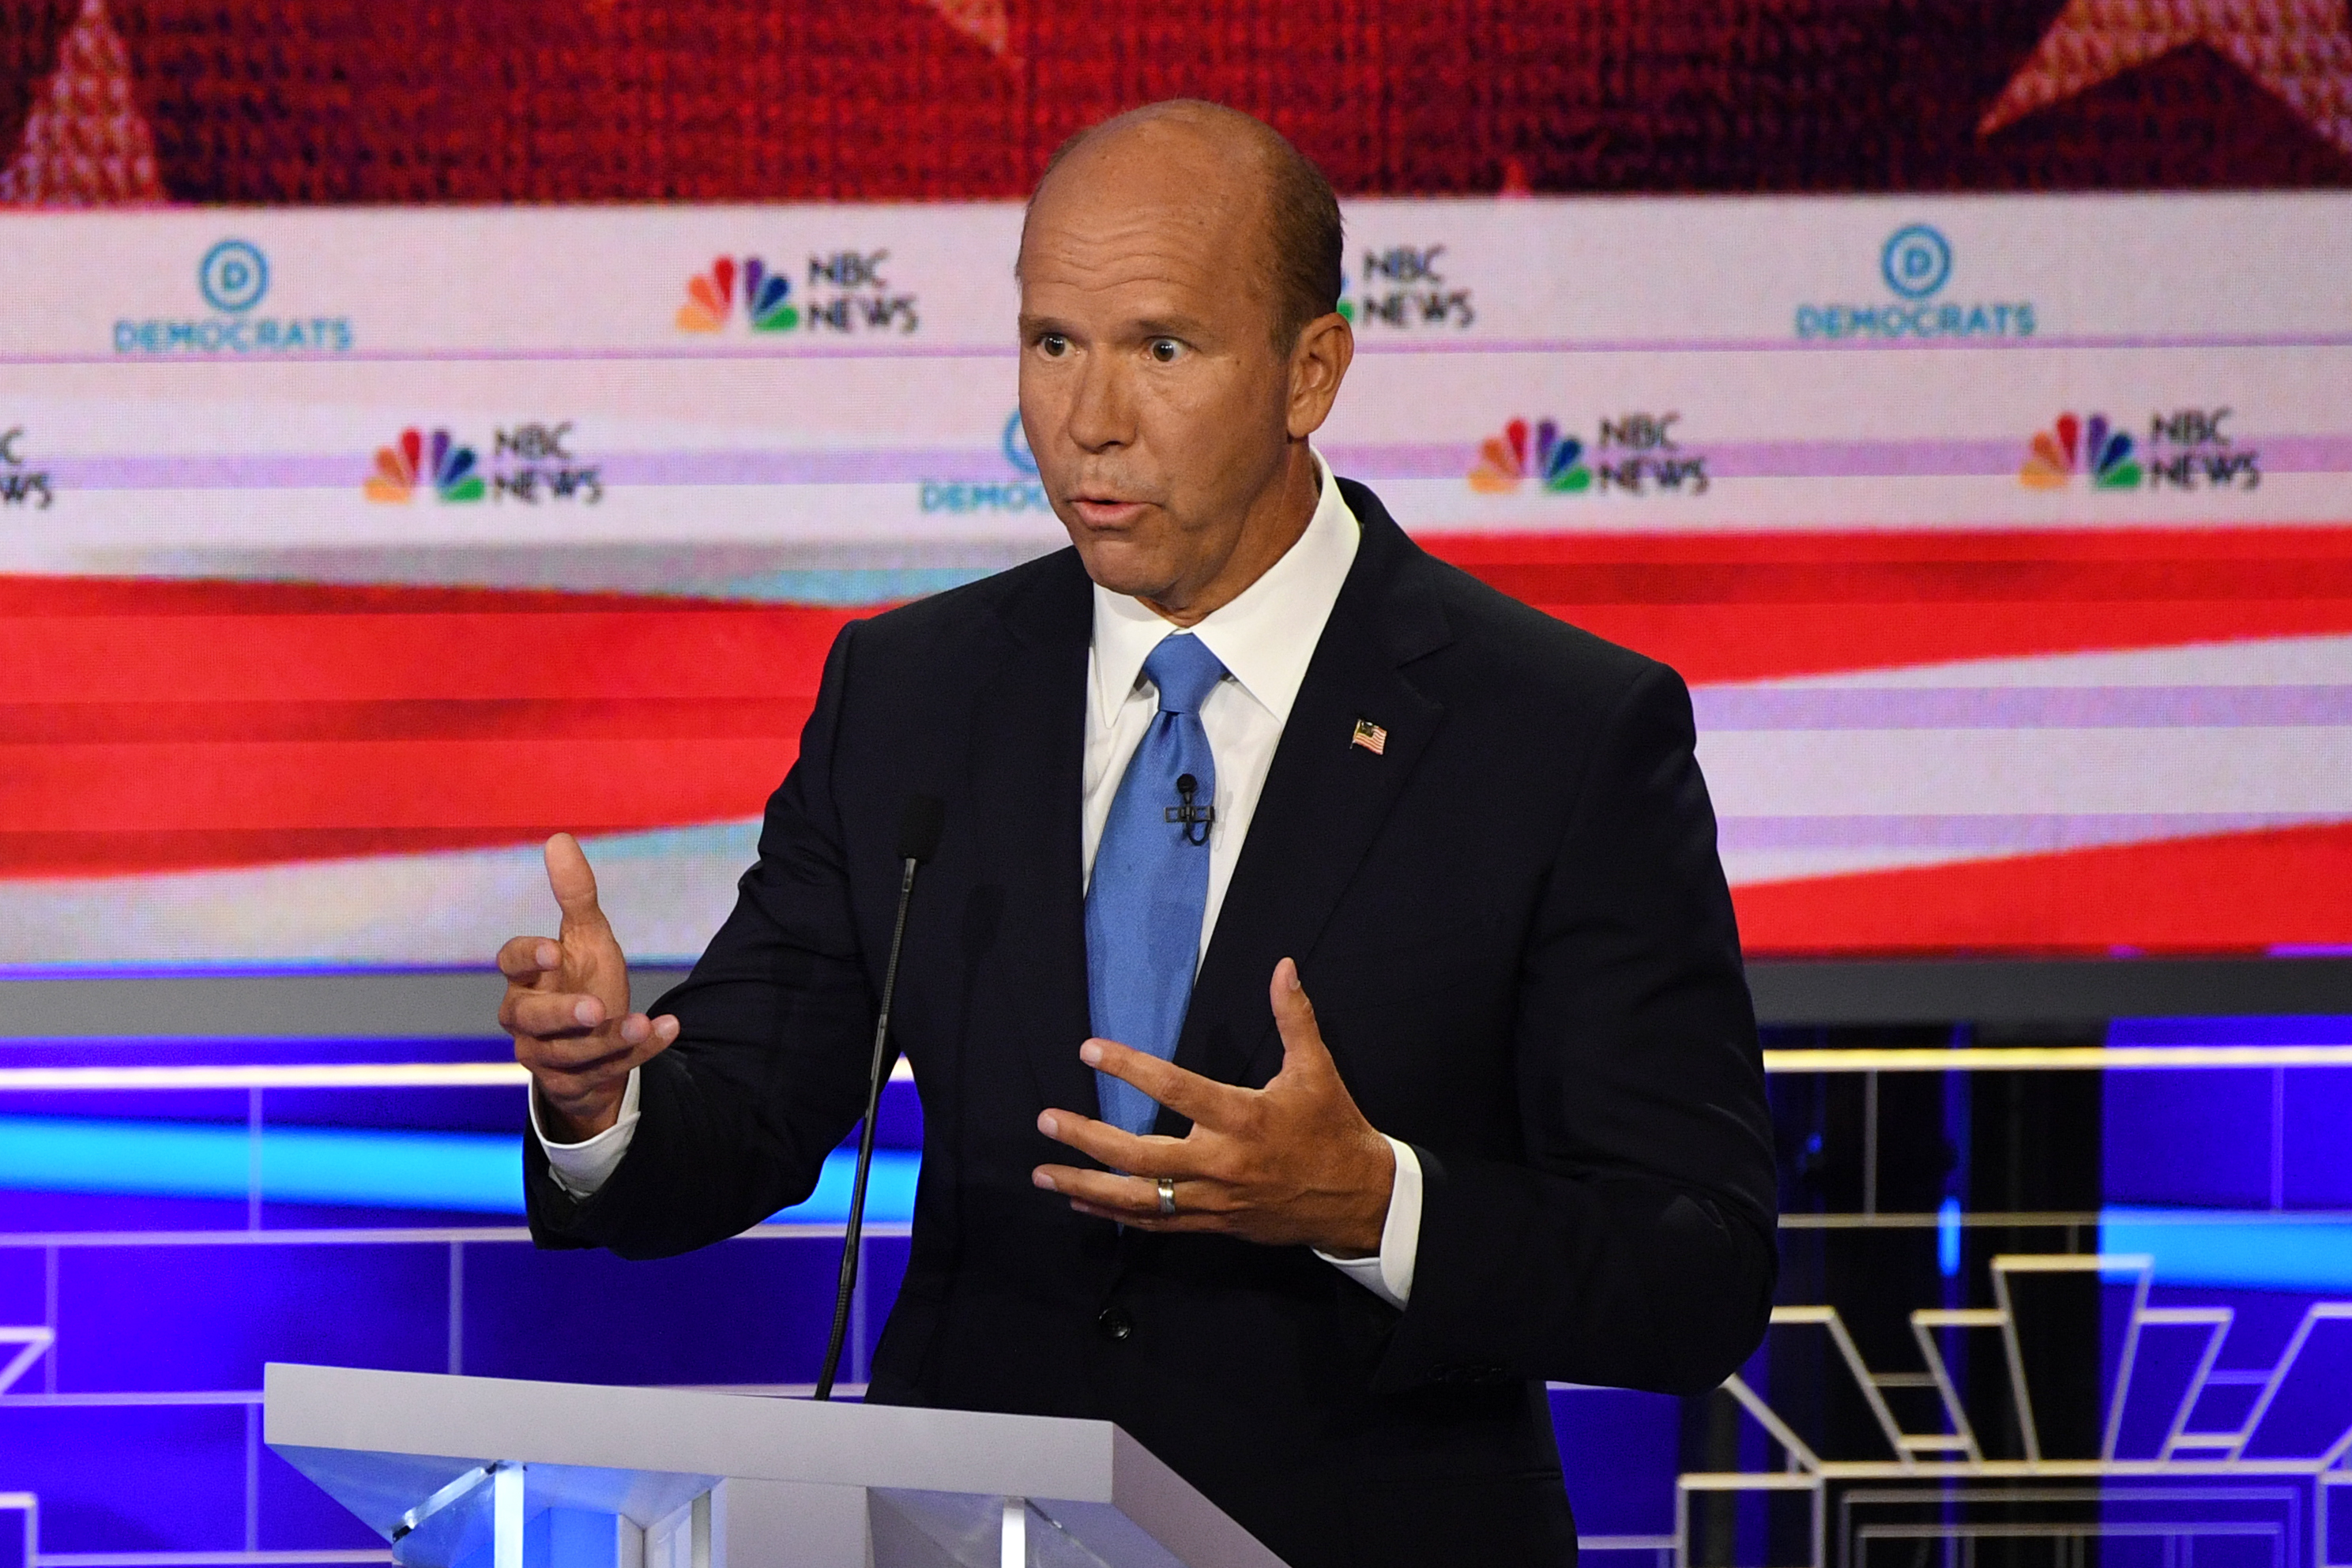 Former US Representative for Maryland John Delaney speaks during the first Democratic primary debate of the 2020 presidential campaign at the Adrienne Arsht Center for the Performing Arts in Miami, June 26, 2019.